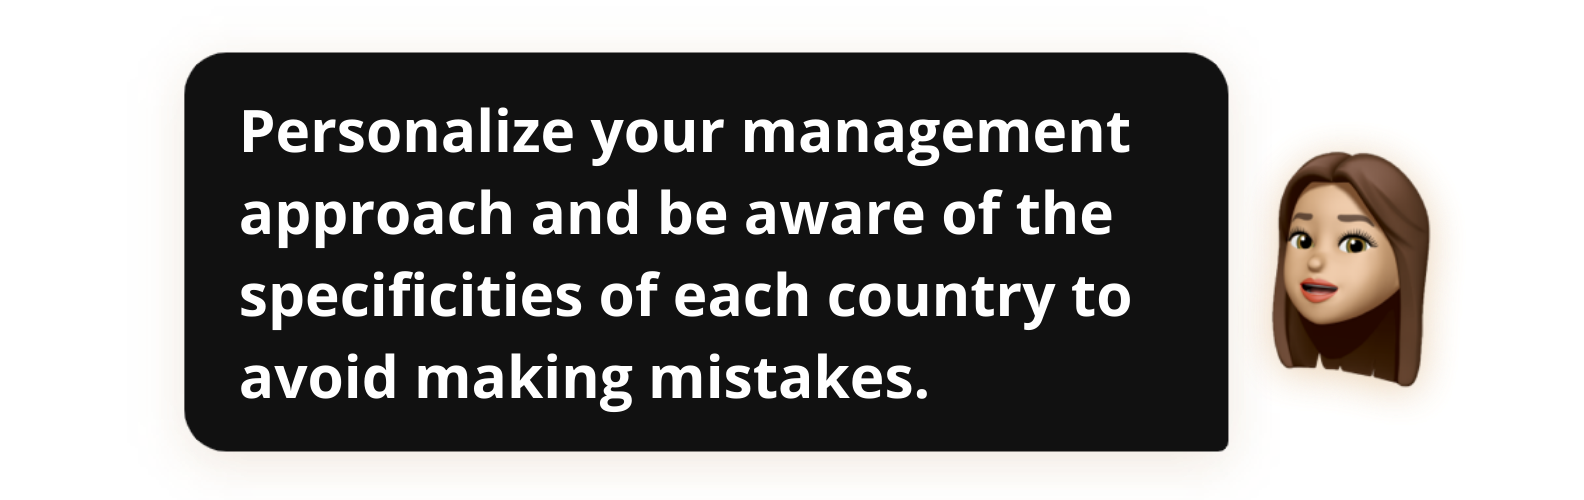 Personalize your management approach and be aware of the specificities of each country to avoid making mistakes - Popwork